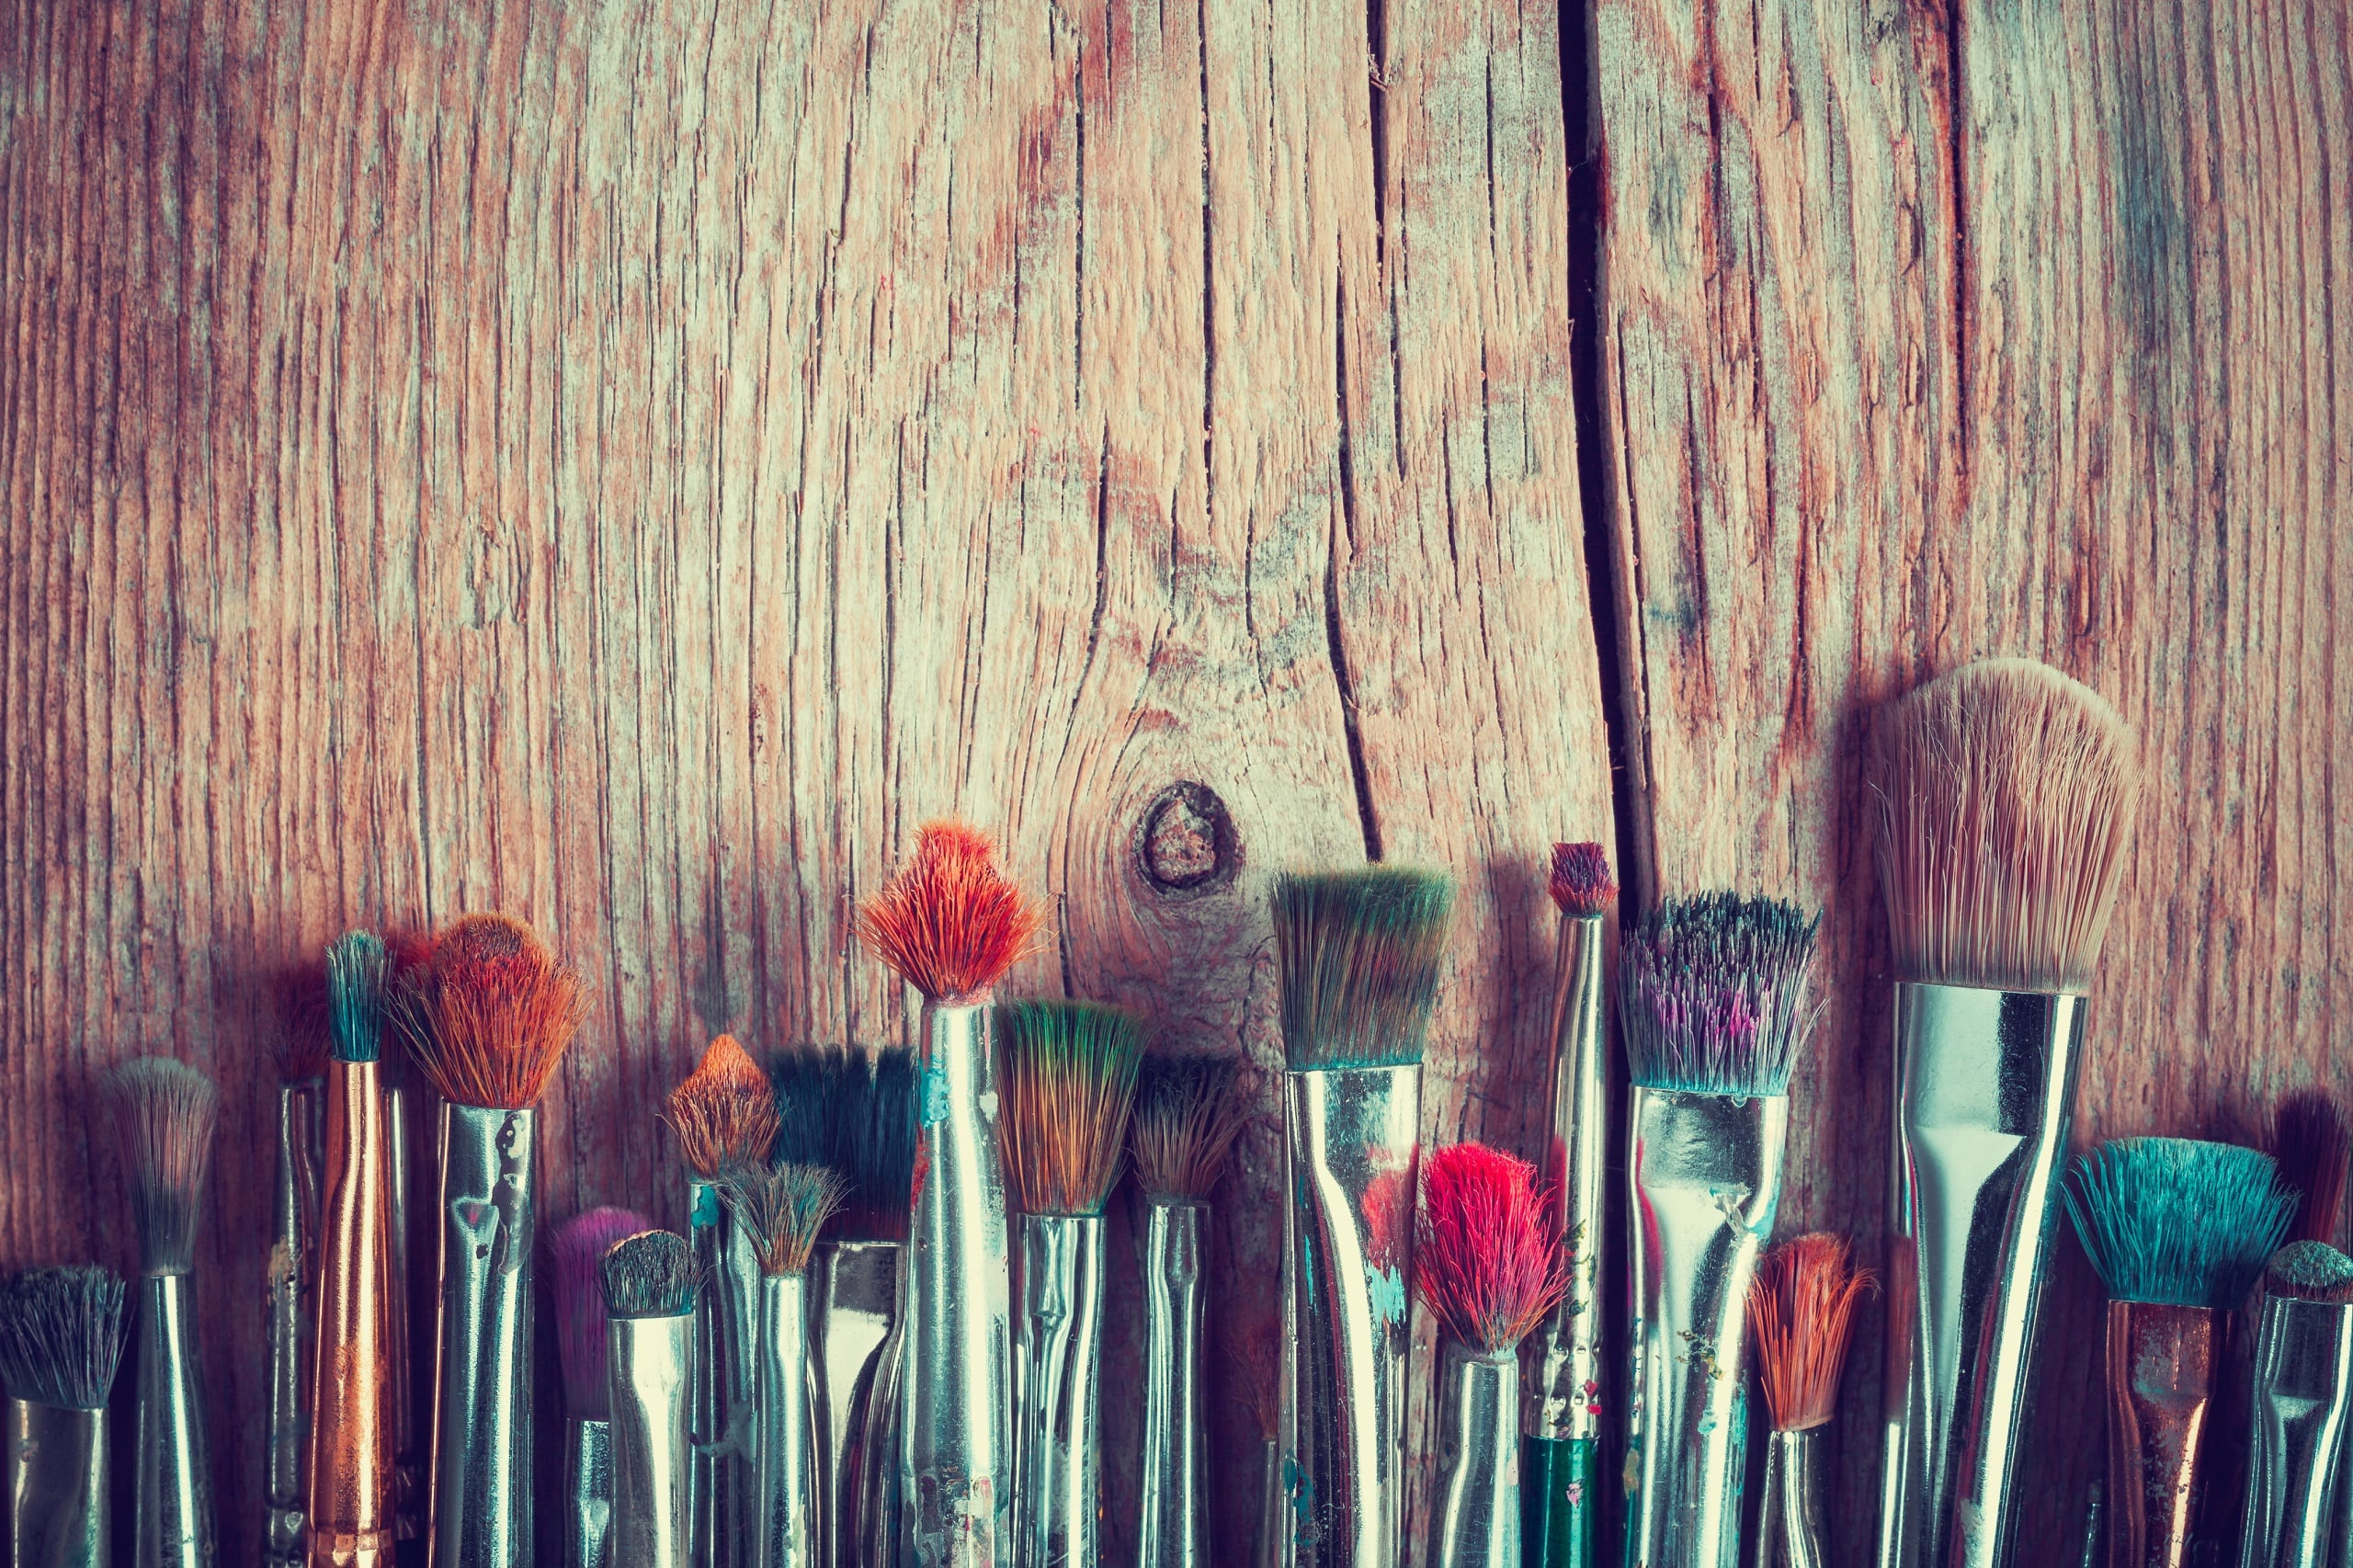 row of artist paintbrushes closeup on old wooden rustic table, retro stylized.